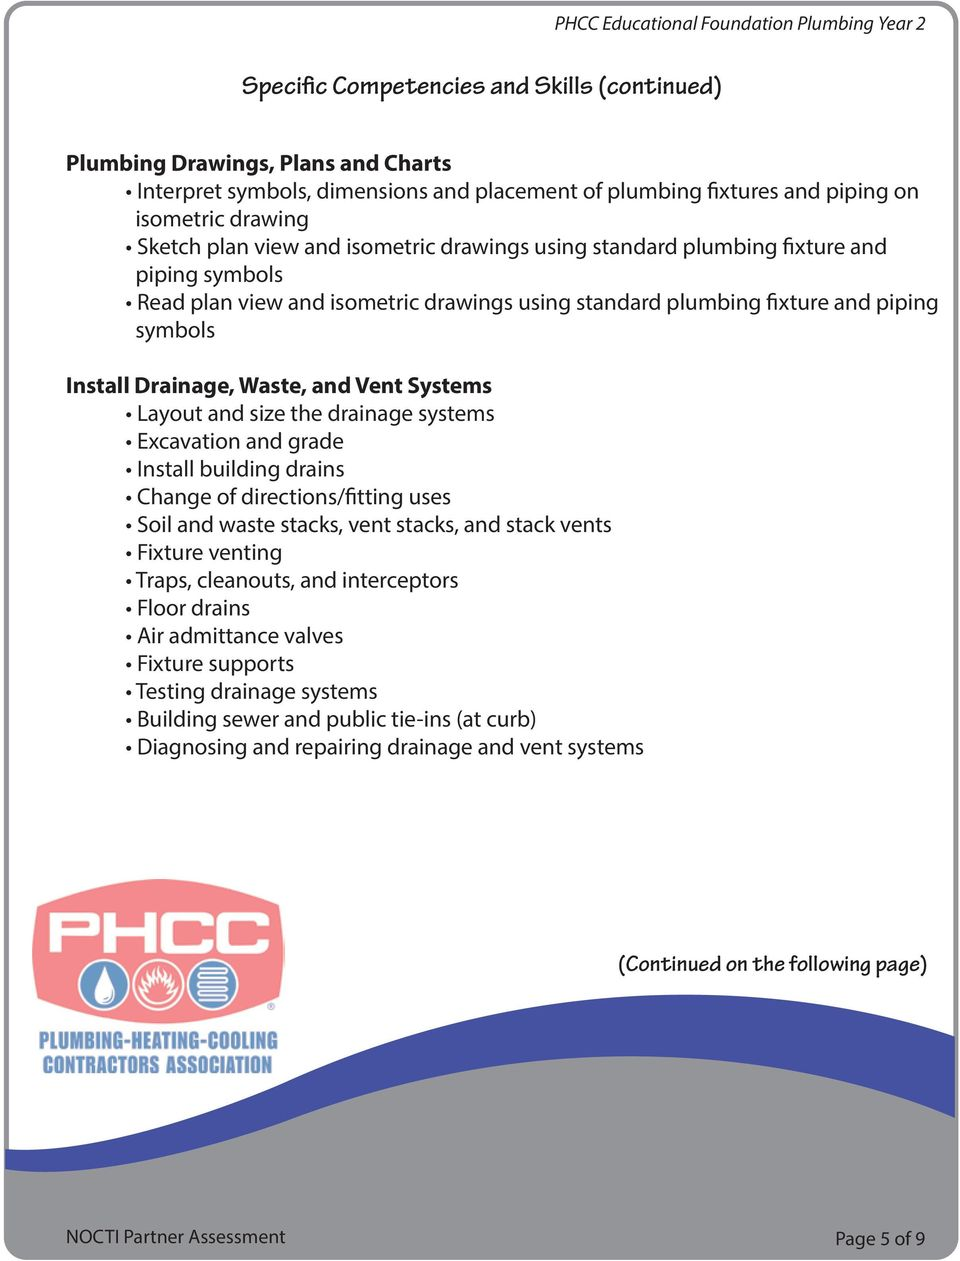 Assessment Blueprint Phcc Educational Foundation Plumbing Year 2 Pdf